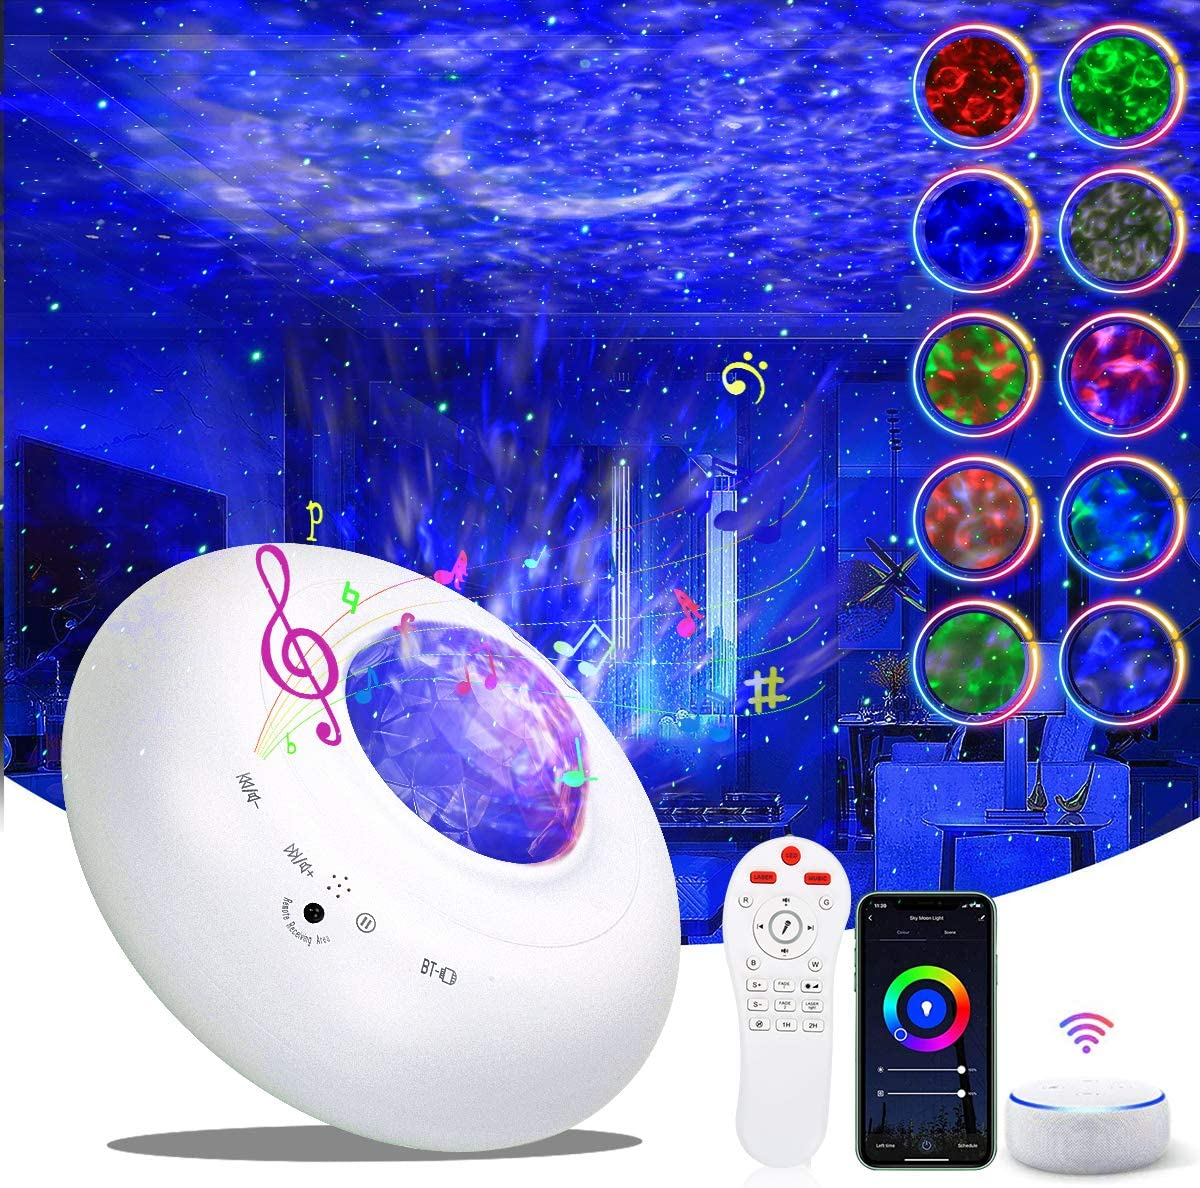 Star Projector, Smart Galaxy Projector Night Light Works with Alexa Google Home,Ocean Wave Starry Light with APP Remote Control Bluetooth Speaker, Sky Night Projector for Bedroom Adult Kids Gift Party